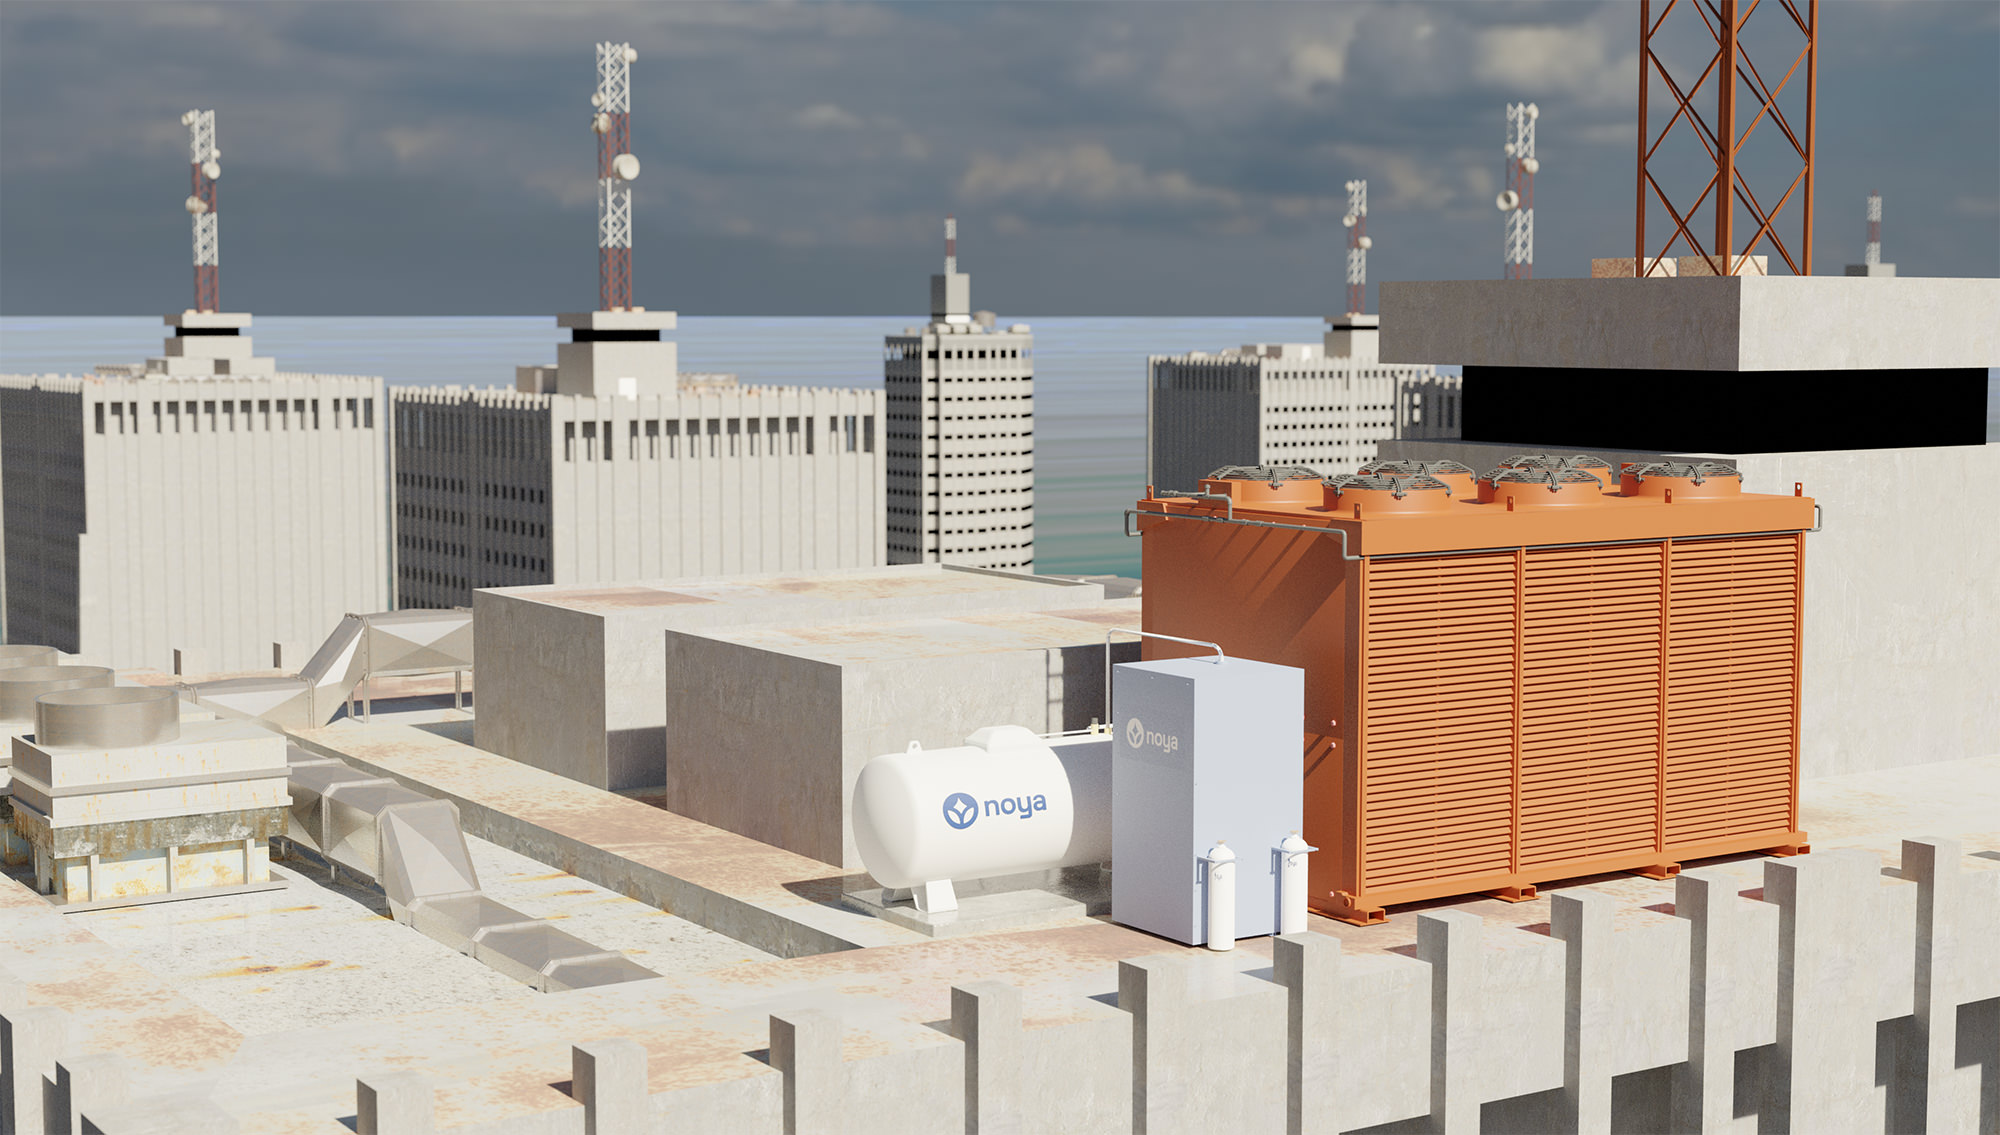 One cooling tower down, 1,999,999 to go